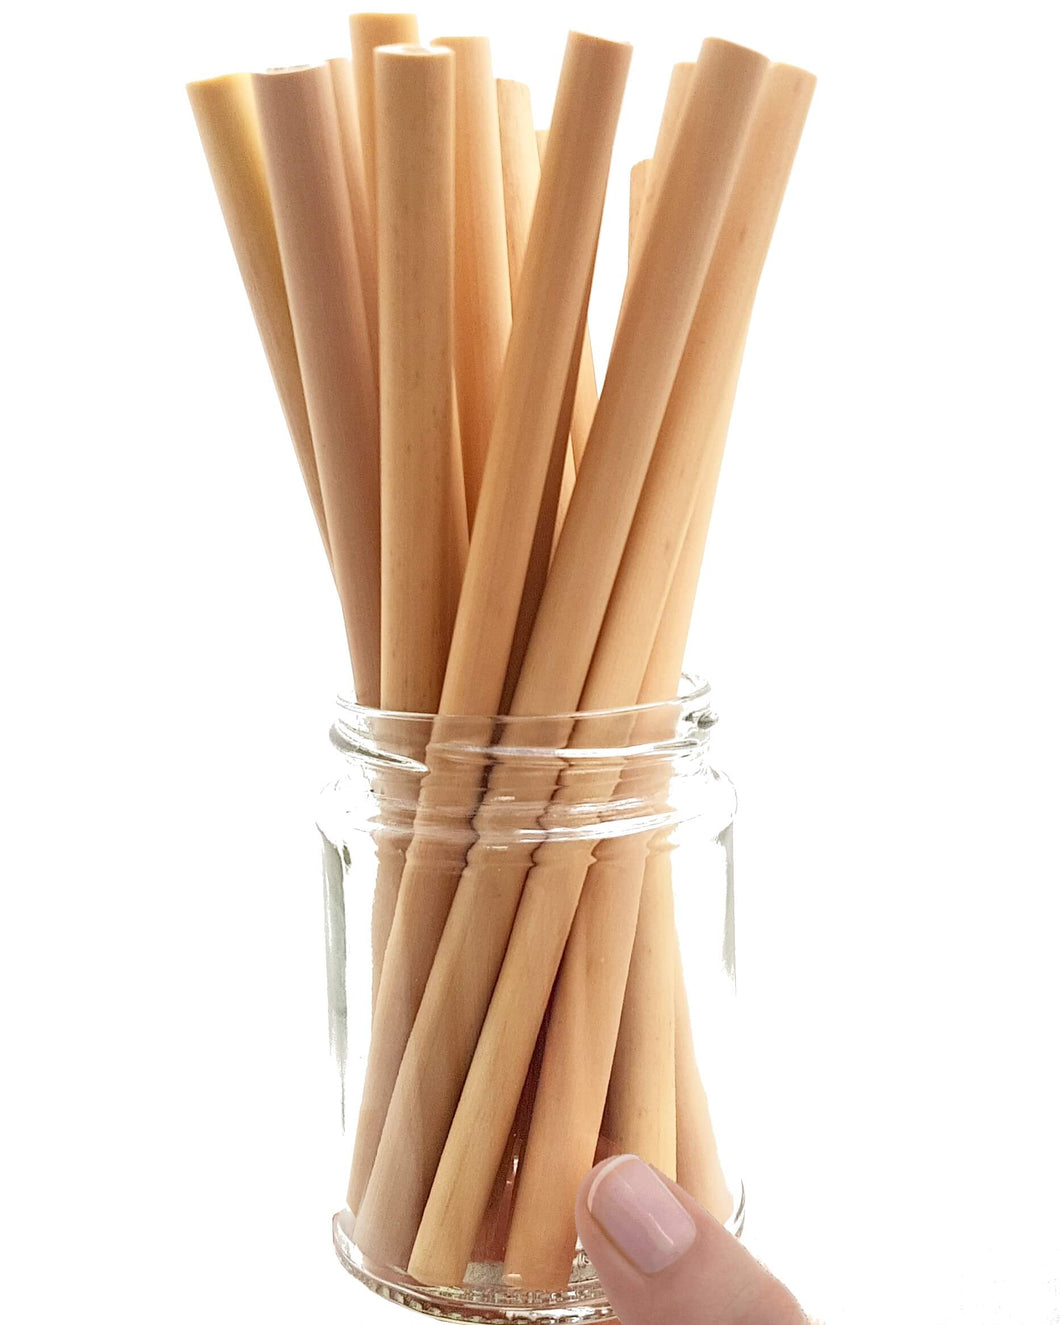 Naturally Carved Bamboo Straws